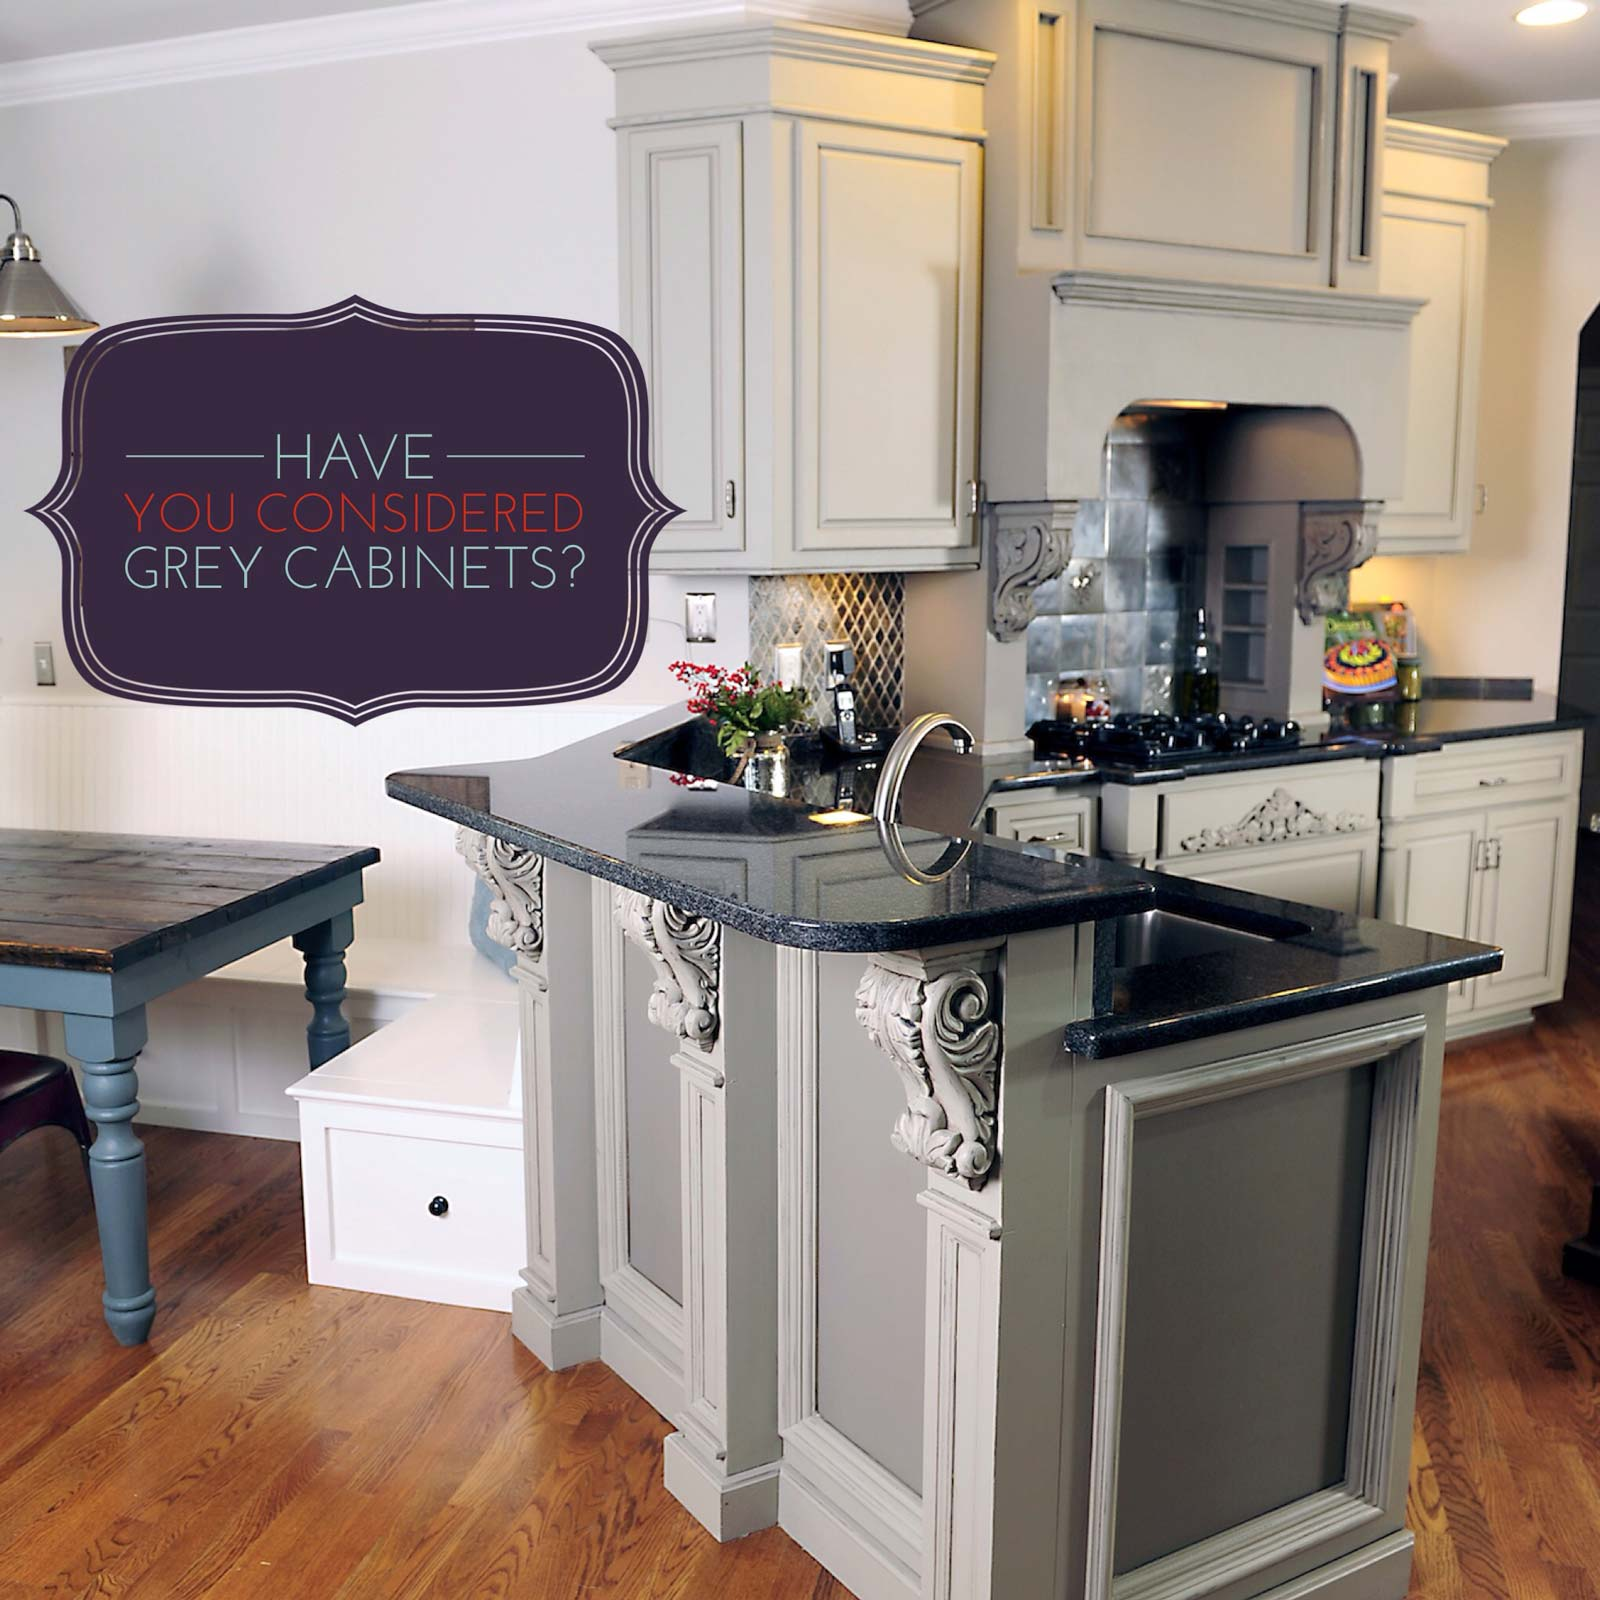 Design For Kitchen Cabinet: Have You Considered Grey Kitchen Cabinets?